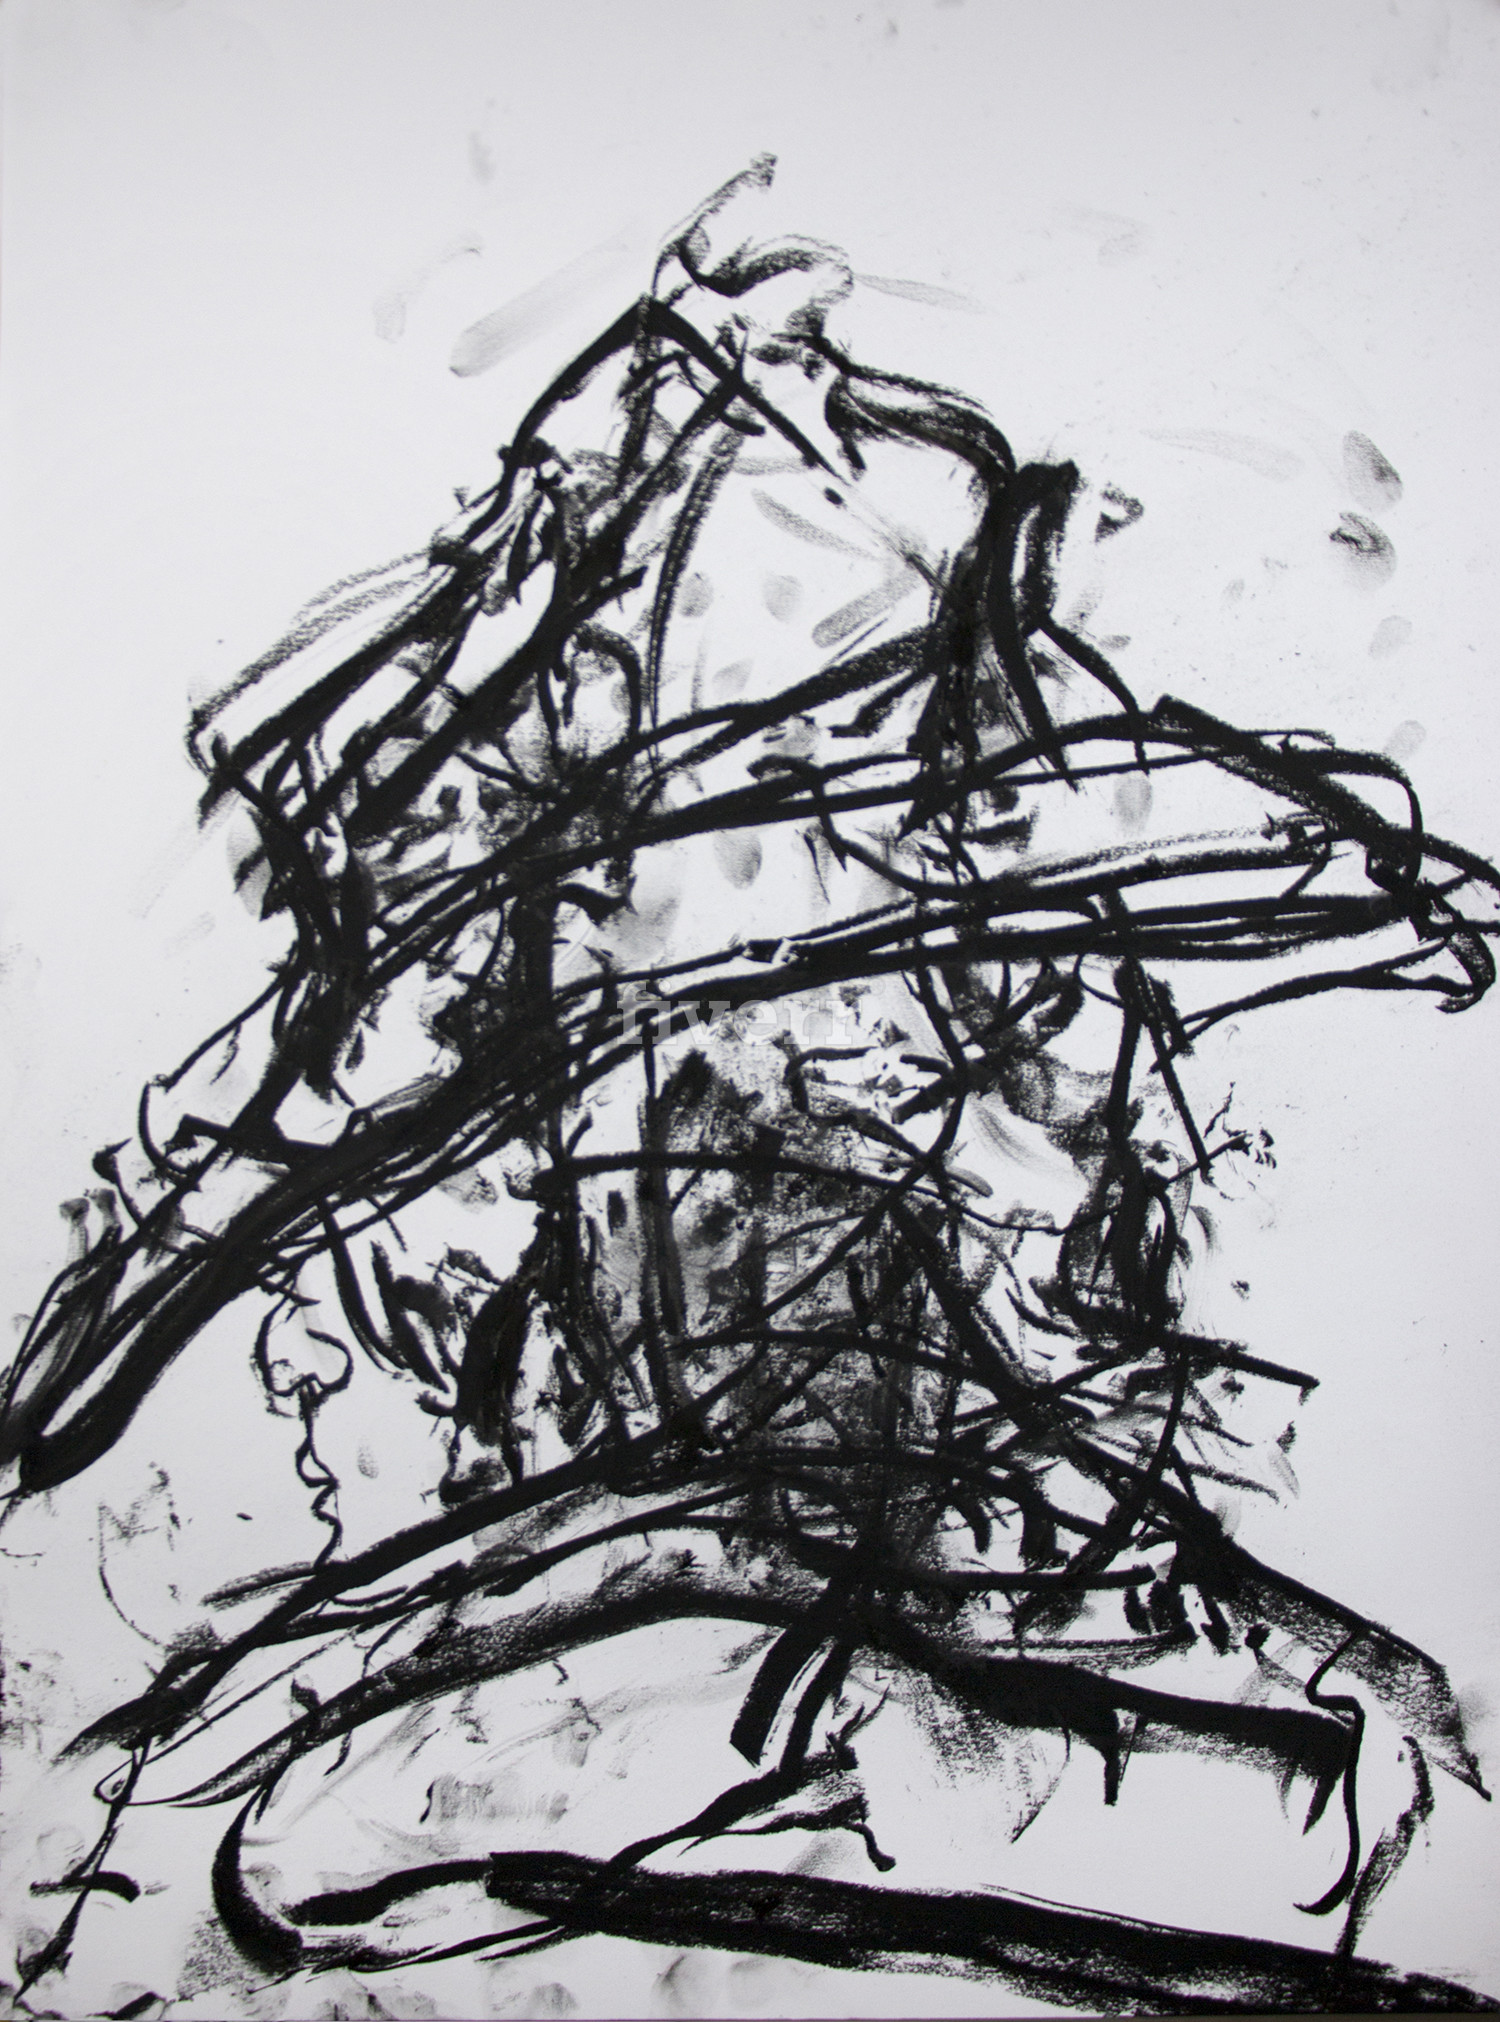 Untitled, 2016, Charcoal on paper, 24 x 18 in.